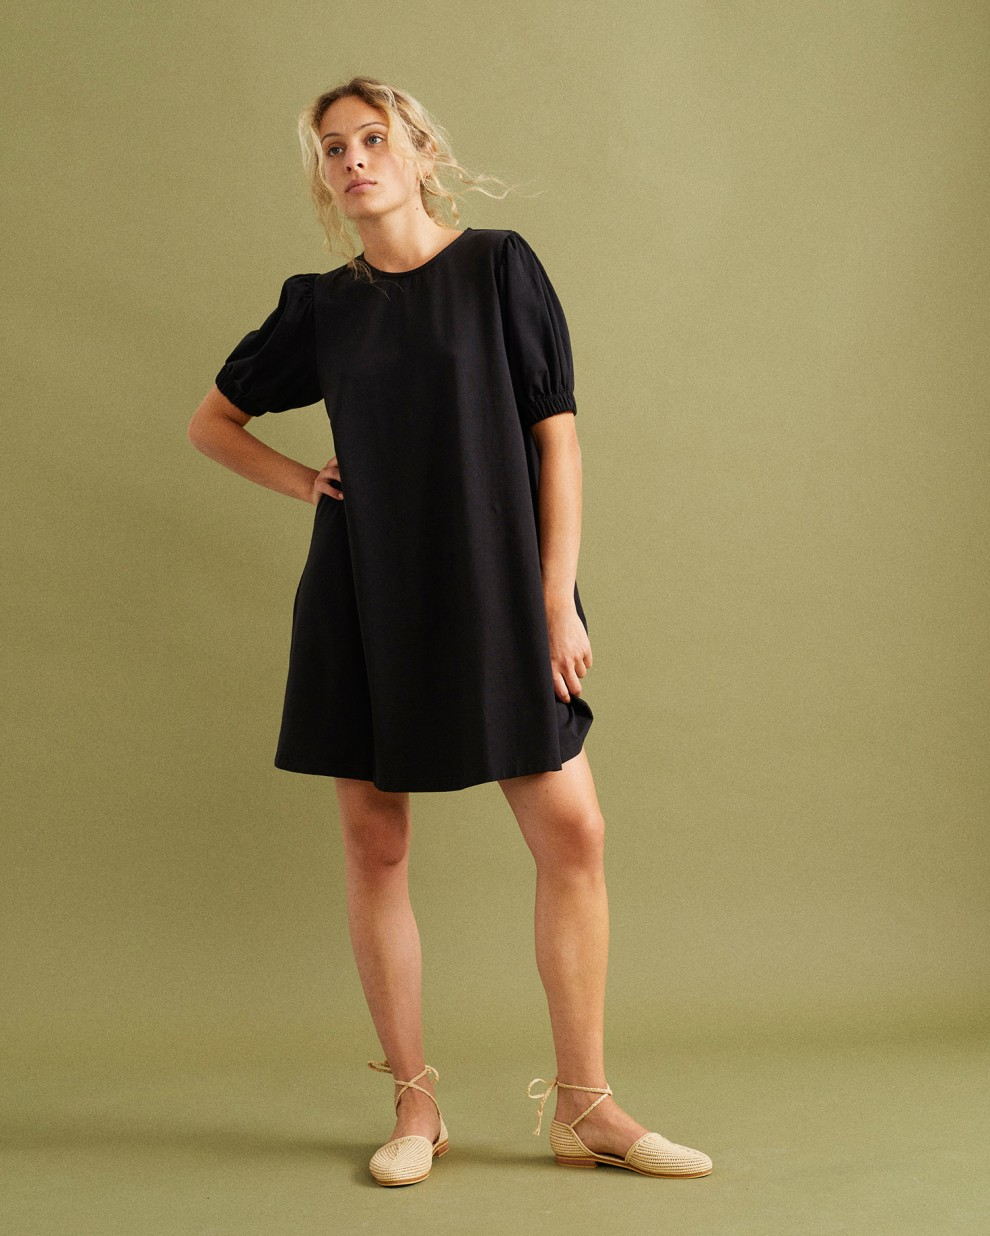 Floreta black dress